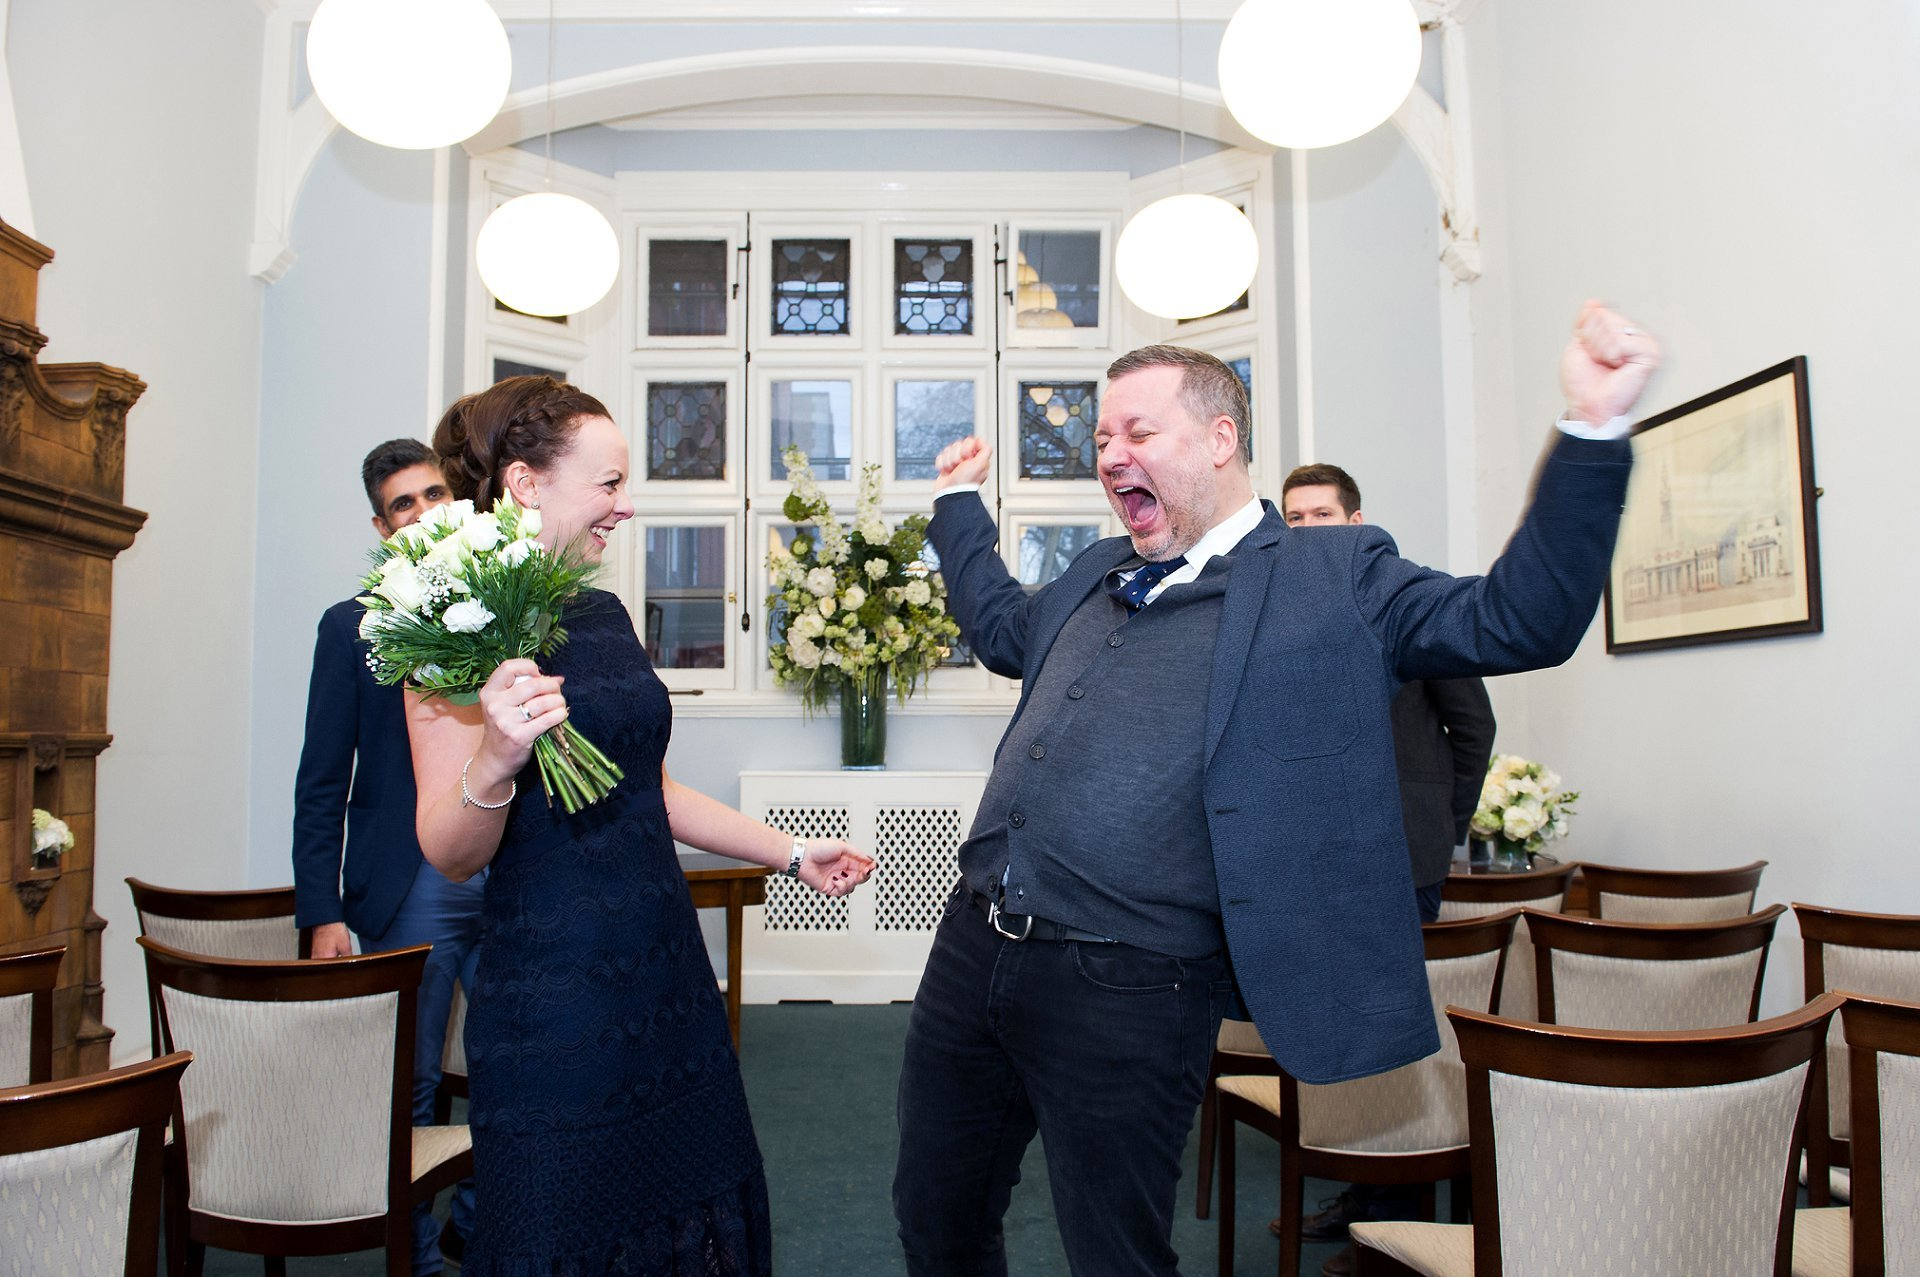 a groom celebrates his marriage captured by register office wedding photographer emma duggan